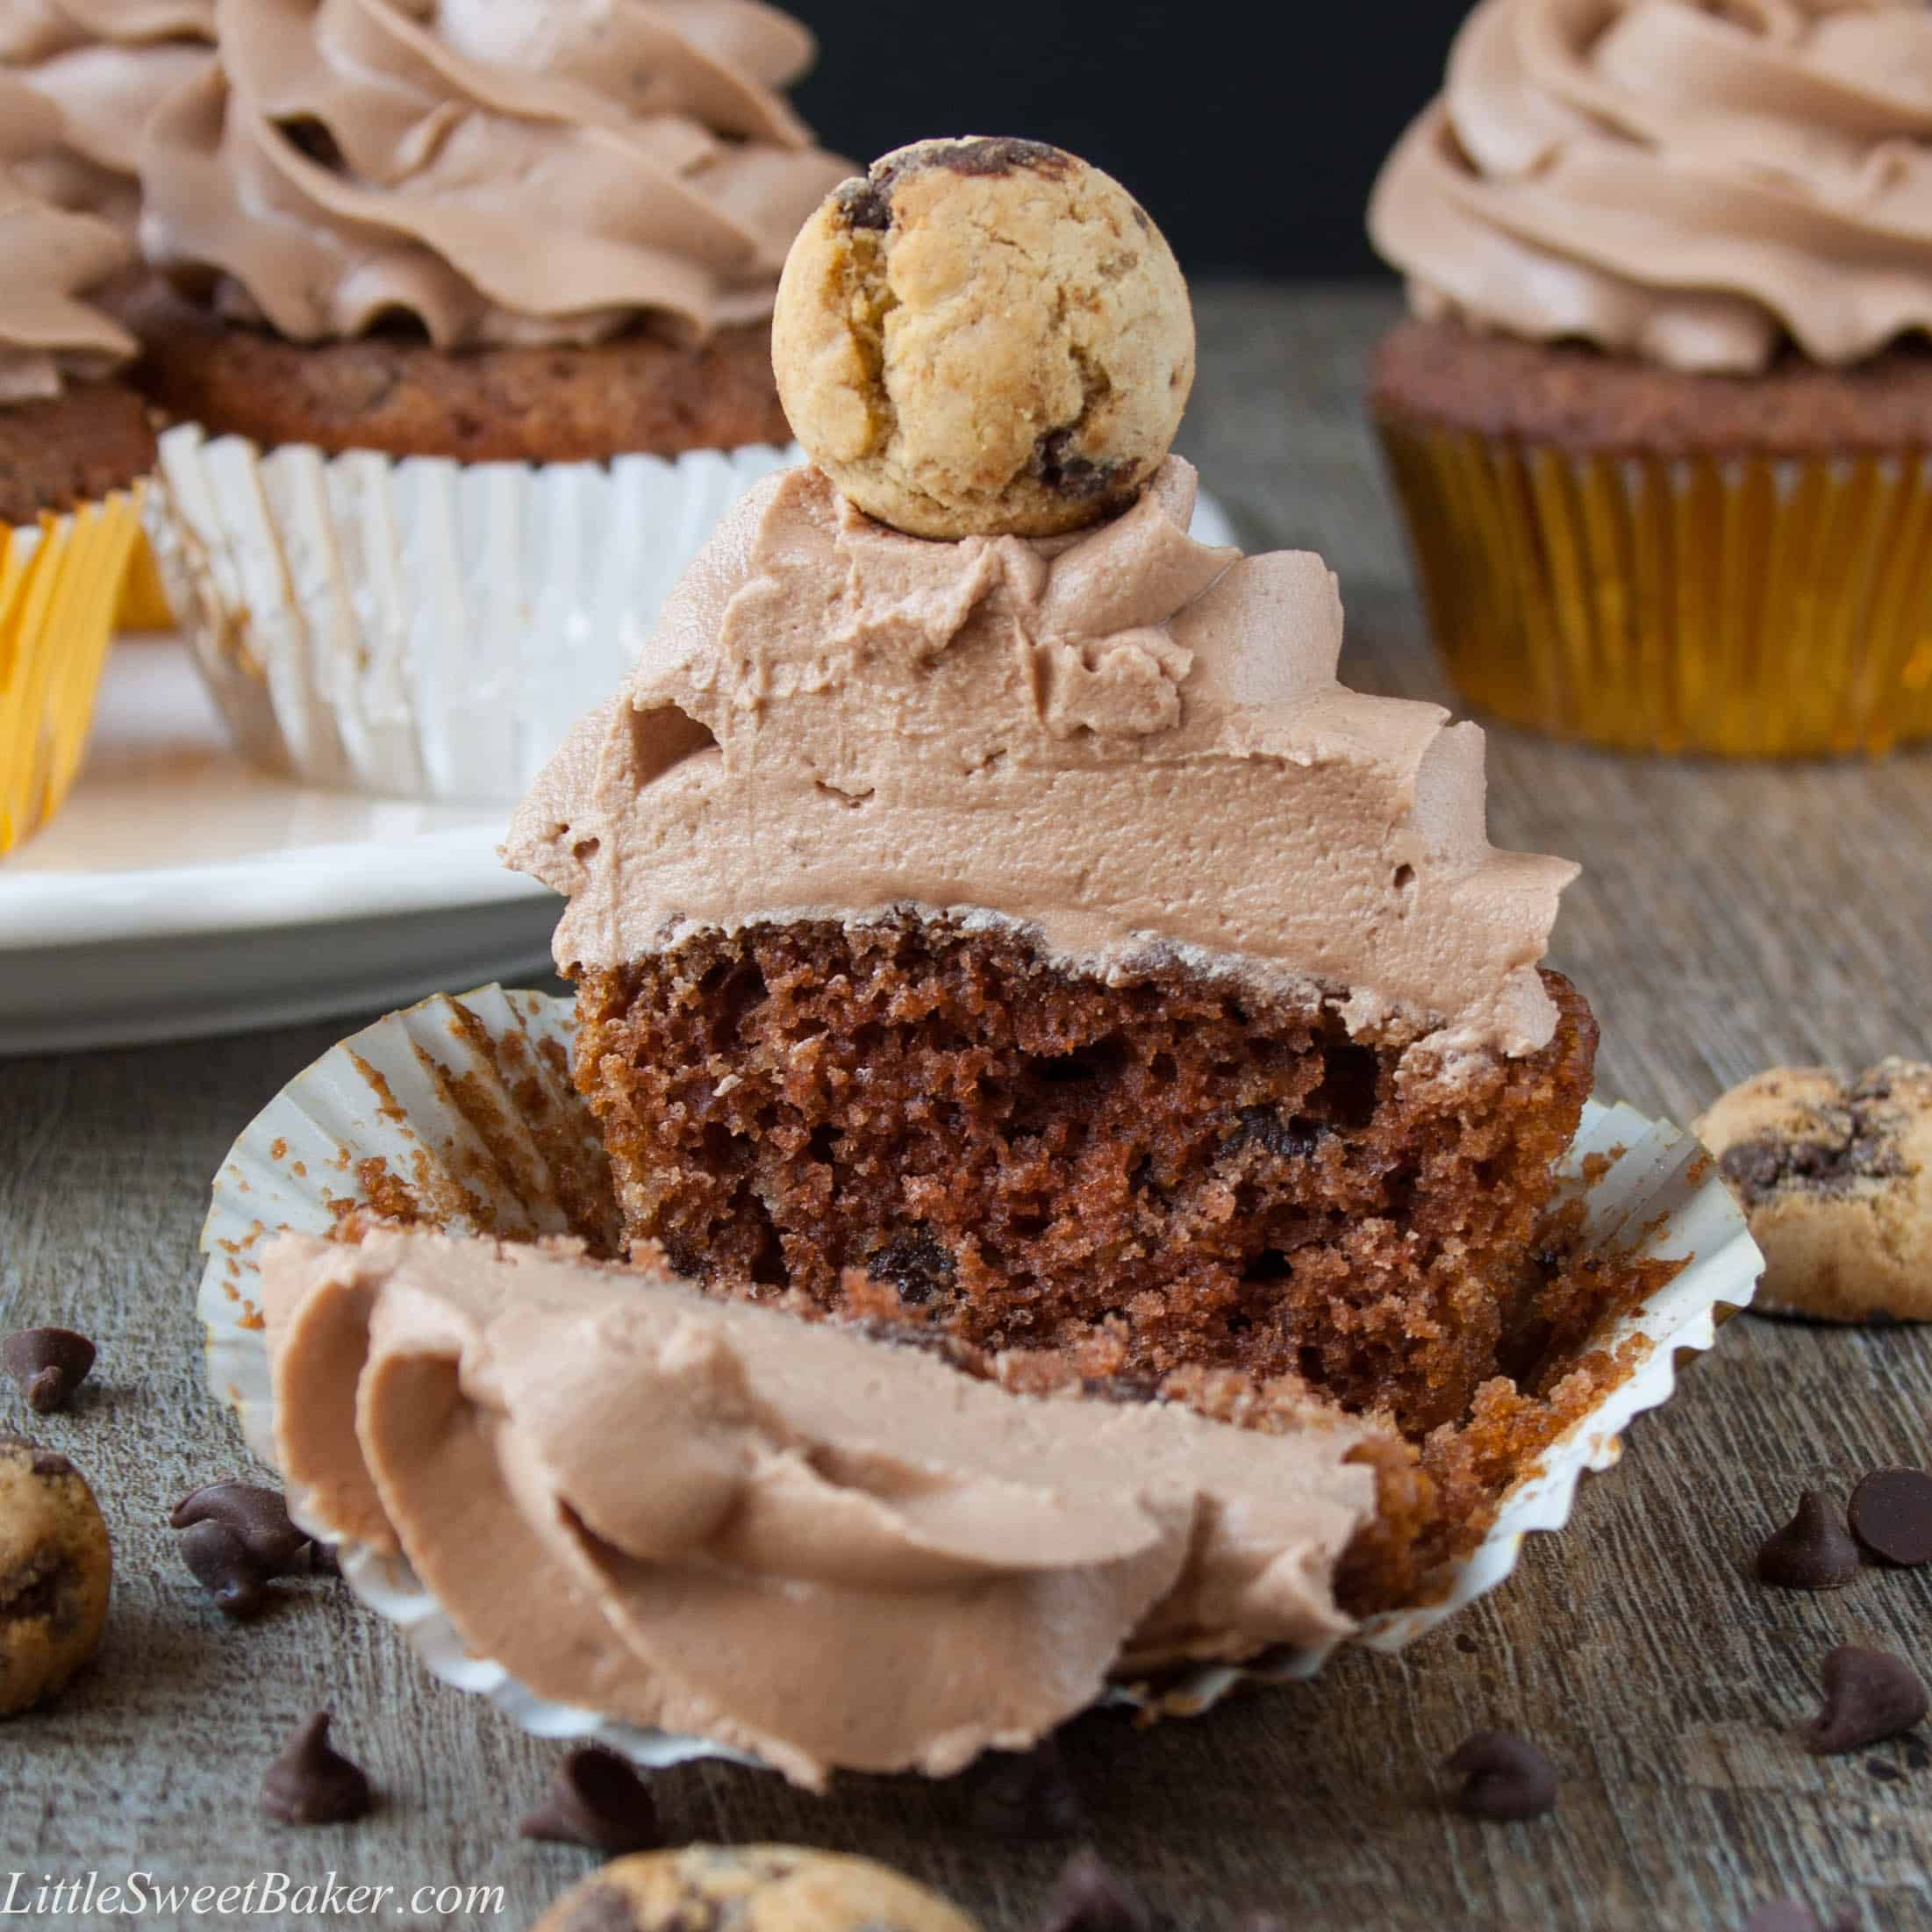 Chocolate Chip Cookie Cupcakes - Little Sweet Baker